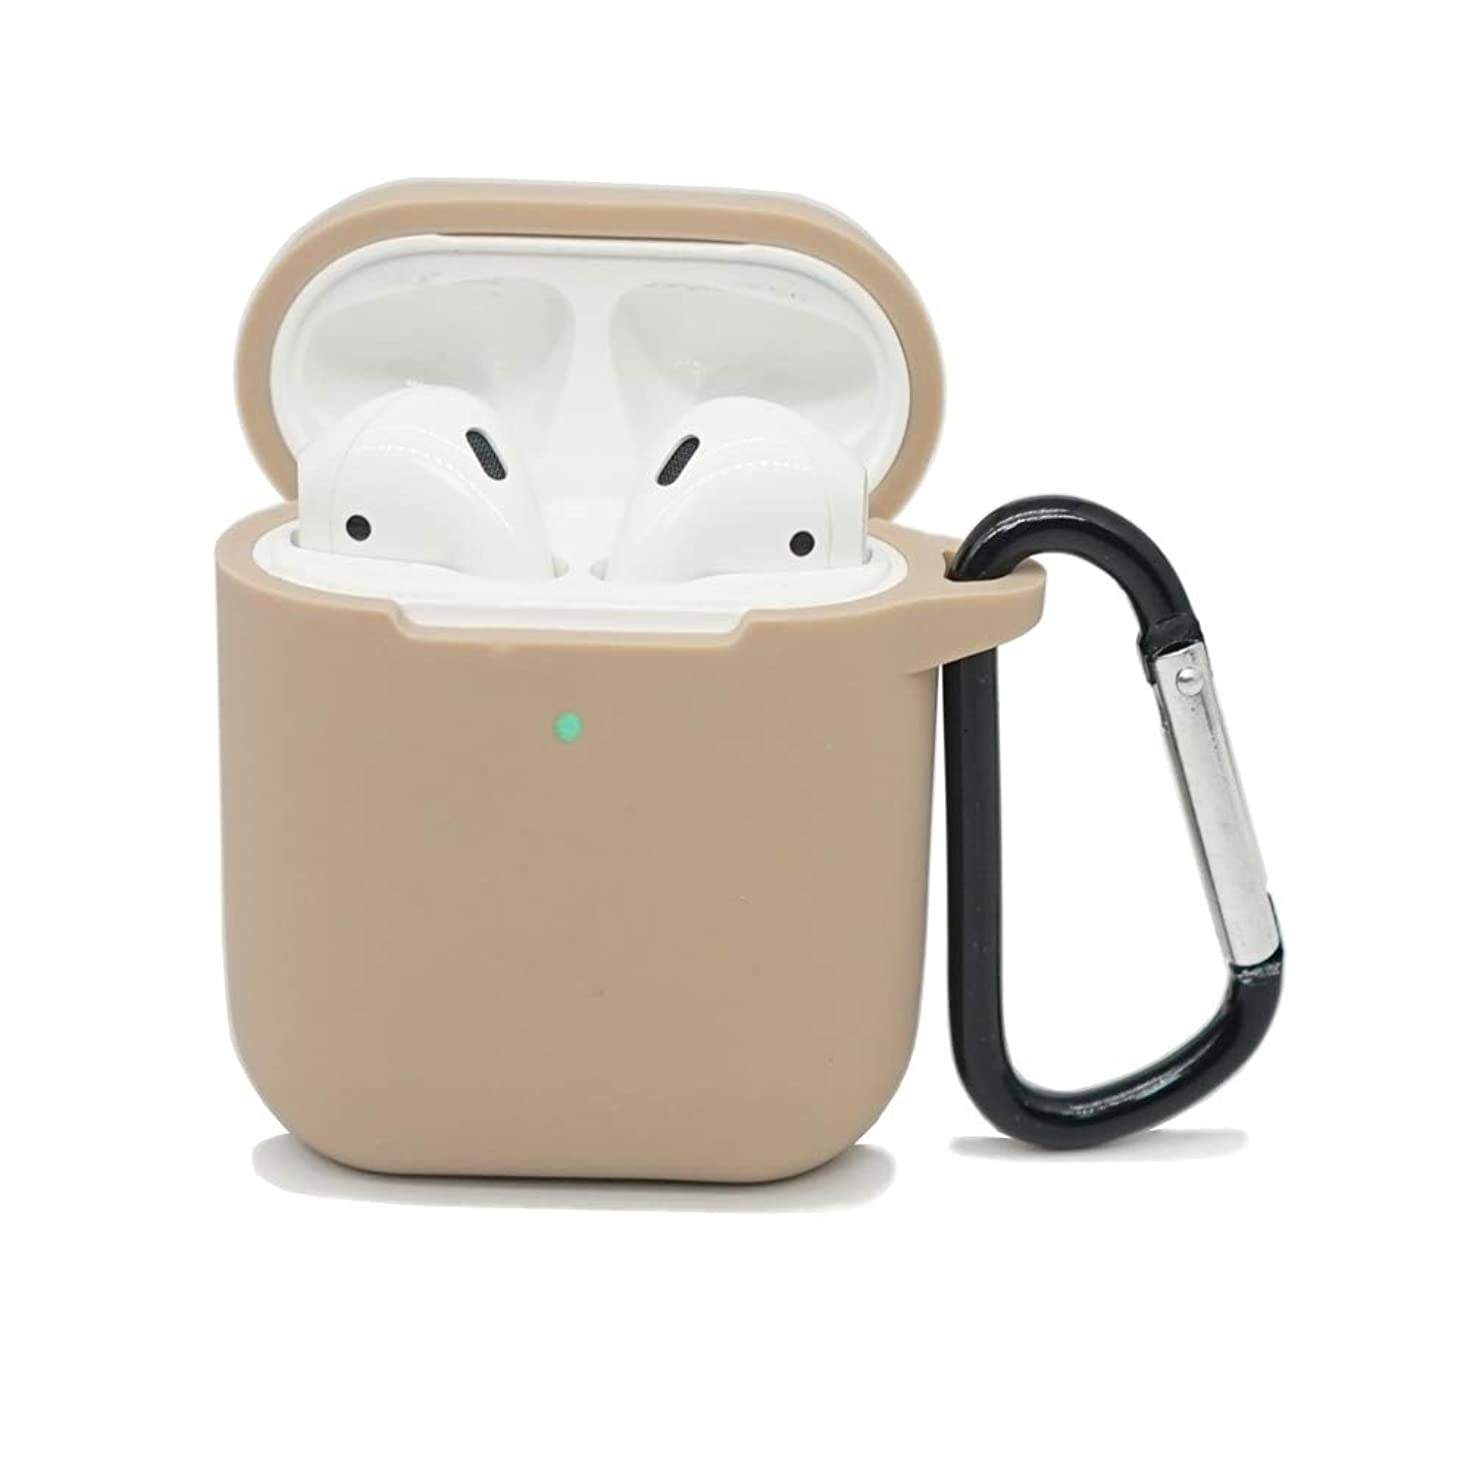 AirSha Compatible for AirPods Case with Keychain,[Front LED Visible]&[Support Wireless Charging],Shockproof Protective Silicone Cover Skin for AirPods Charging Case 2 & 1 (Khaki)